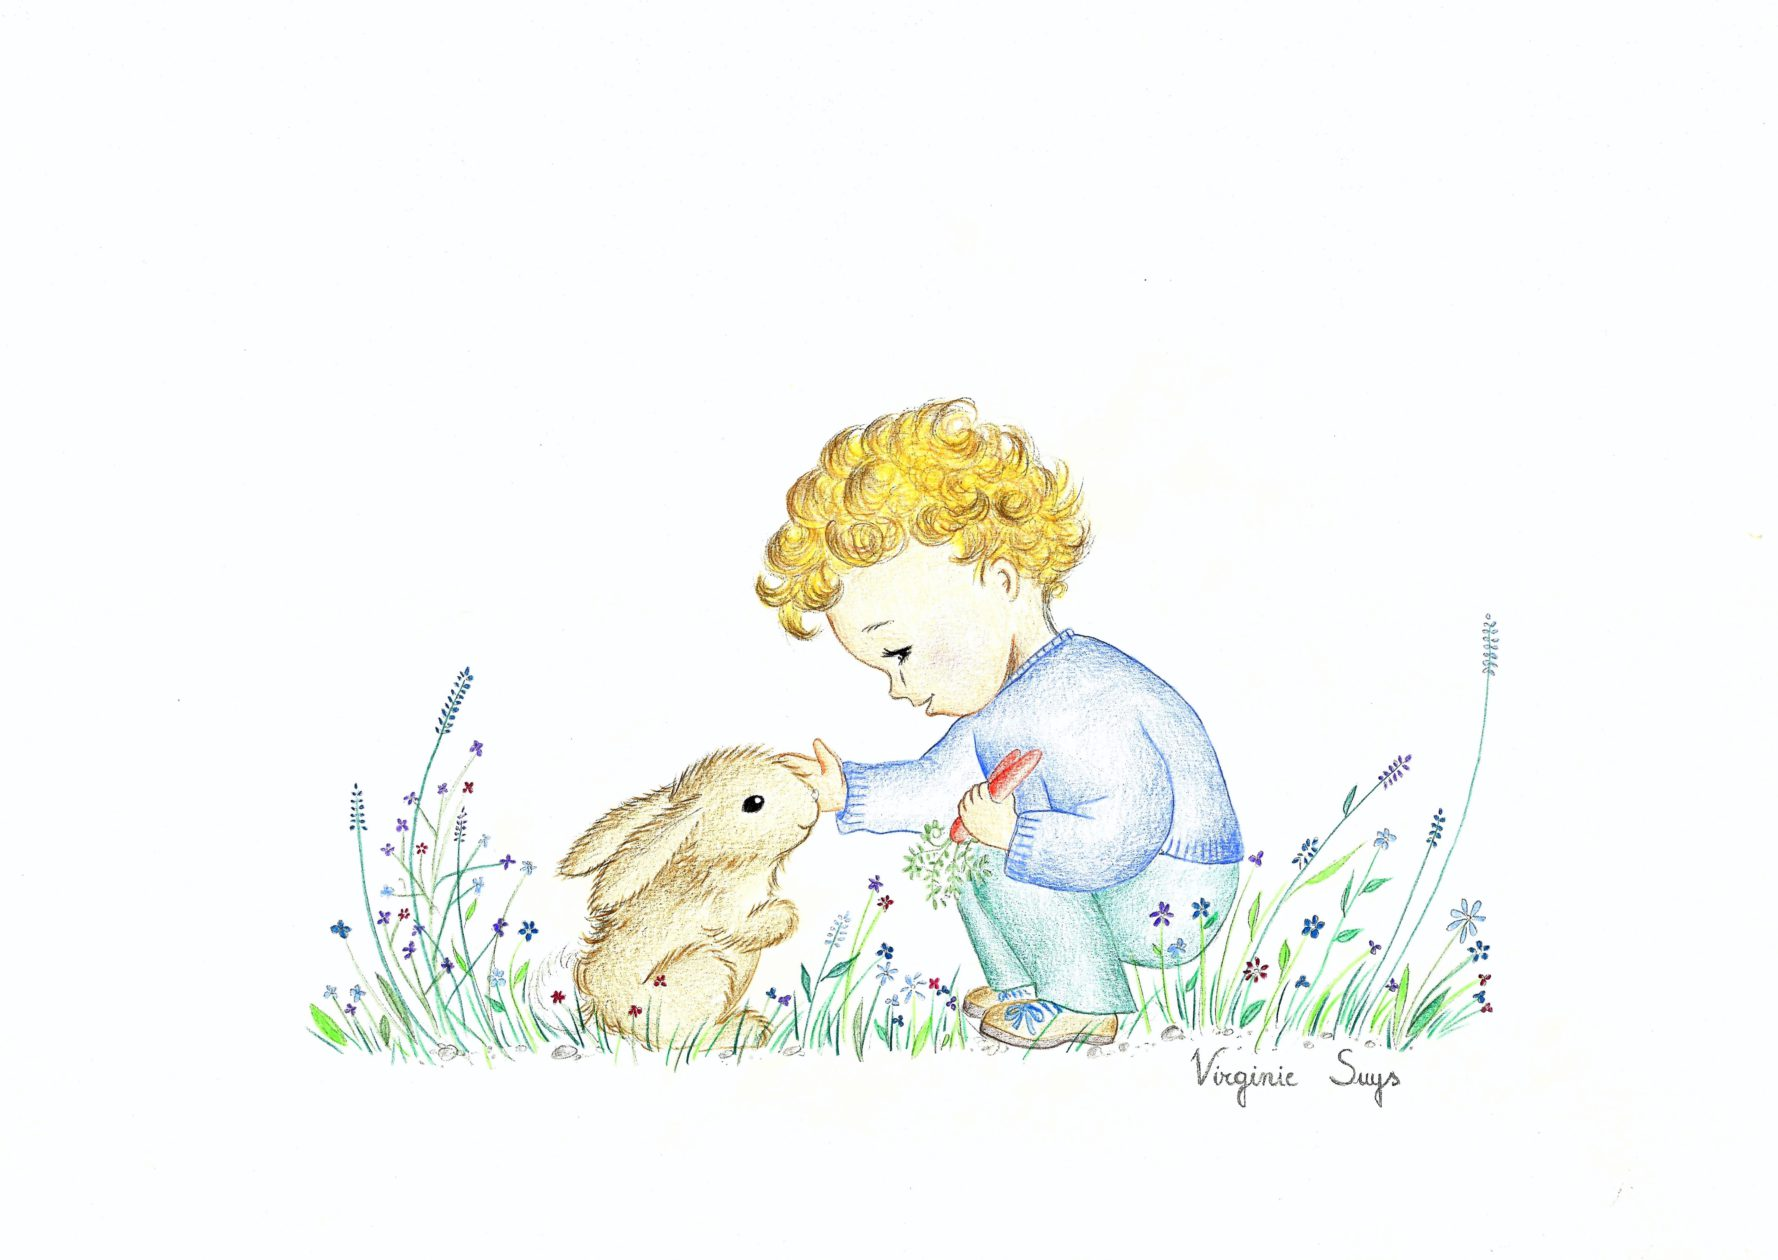 Boy with rabbit in blue illustration